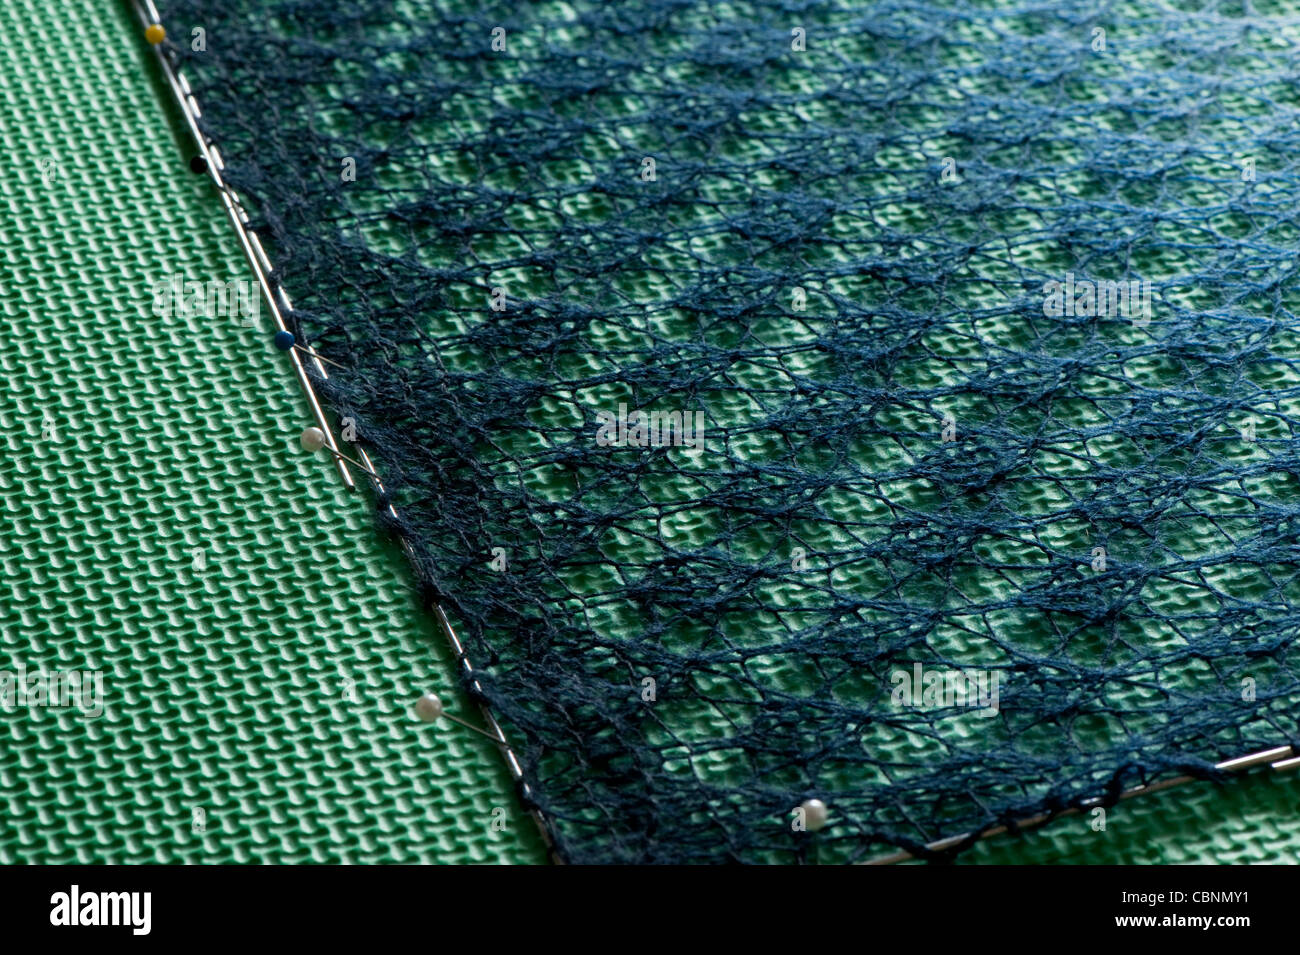 Variegated yarn knitted lace shawl being blocked: dampened and stretched out on foam mats to set and display lace Stock Photo